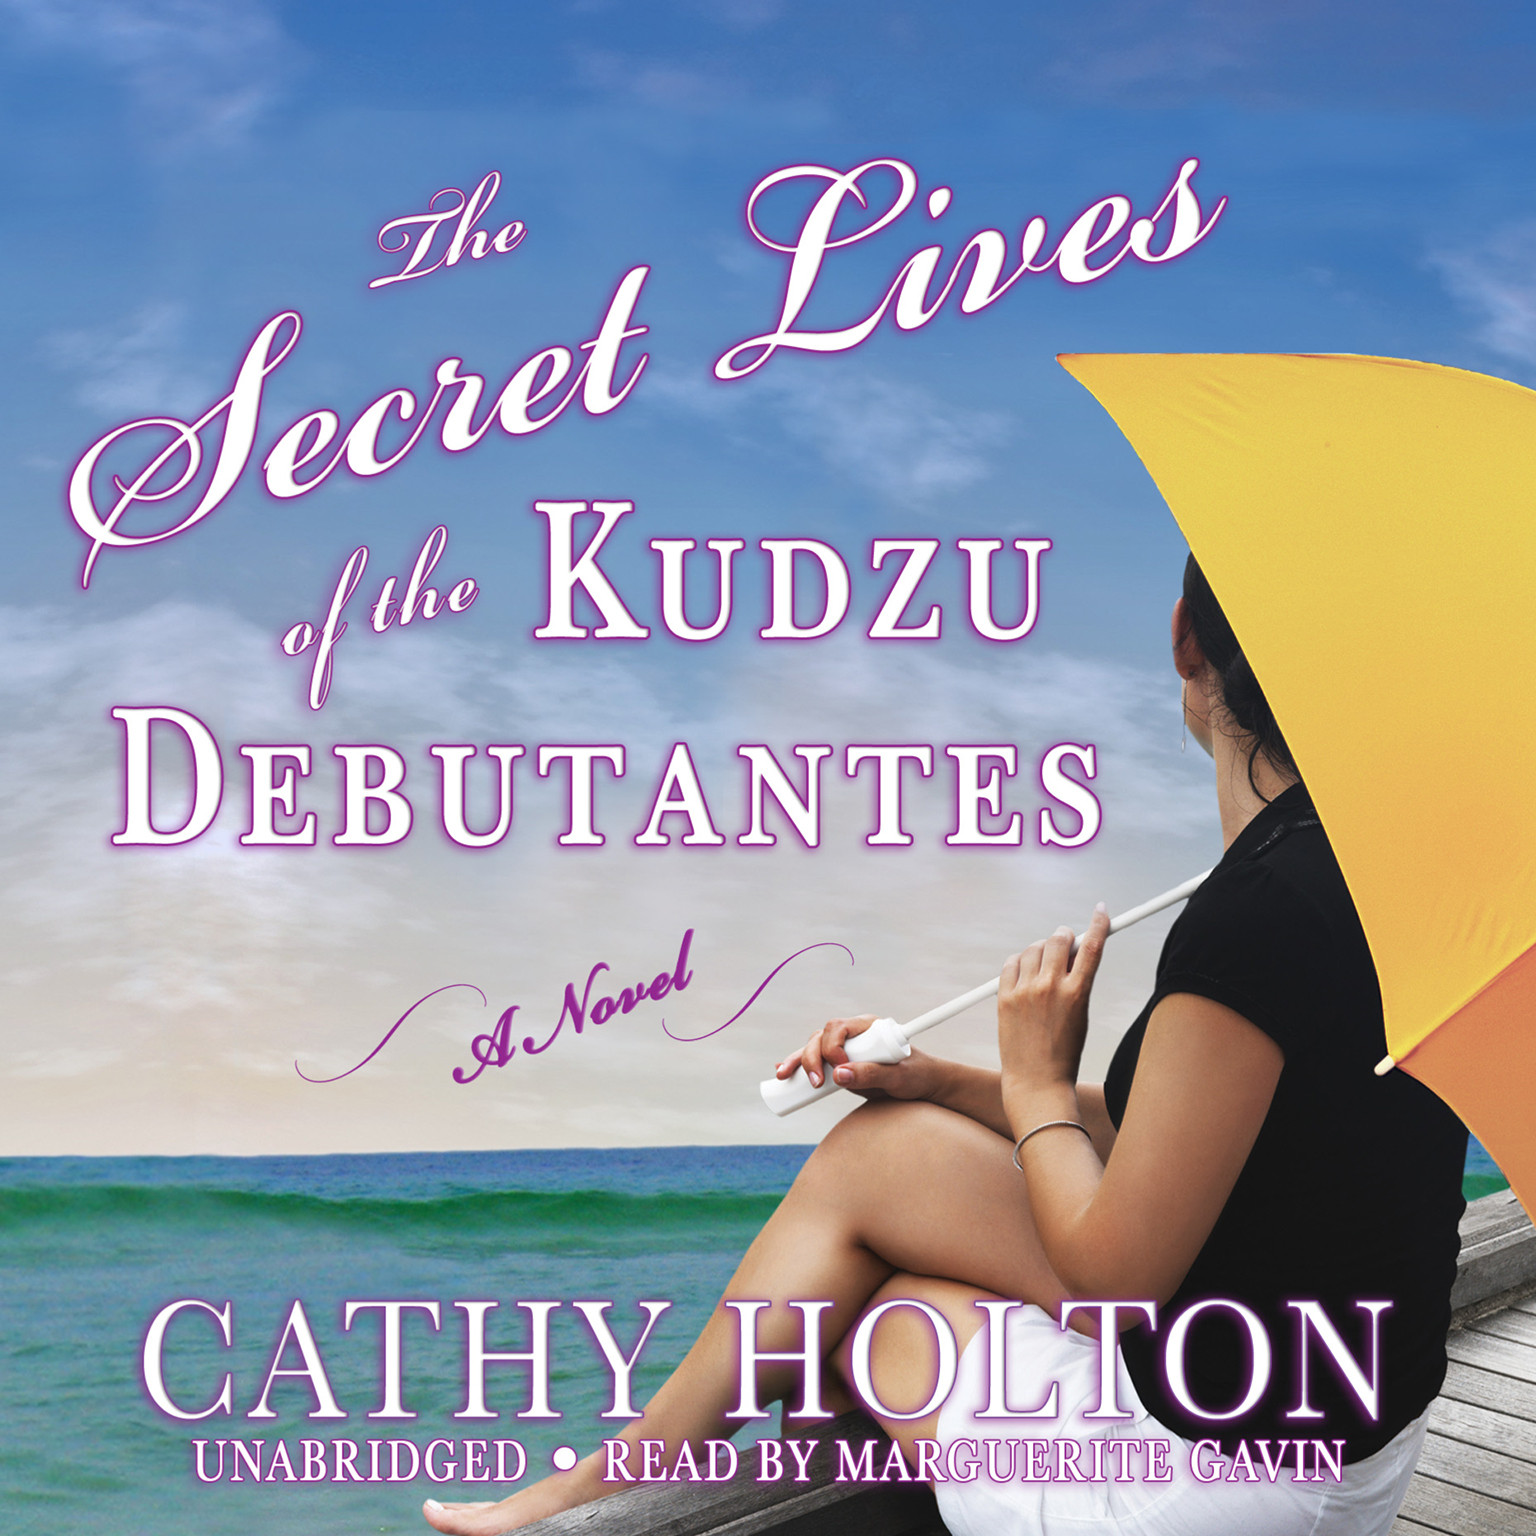 Printable The Secret Lives of the Kudzu Debutantes: A Novel Audiobook Cover Art